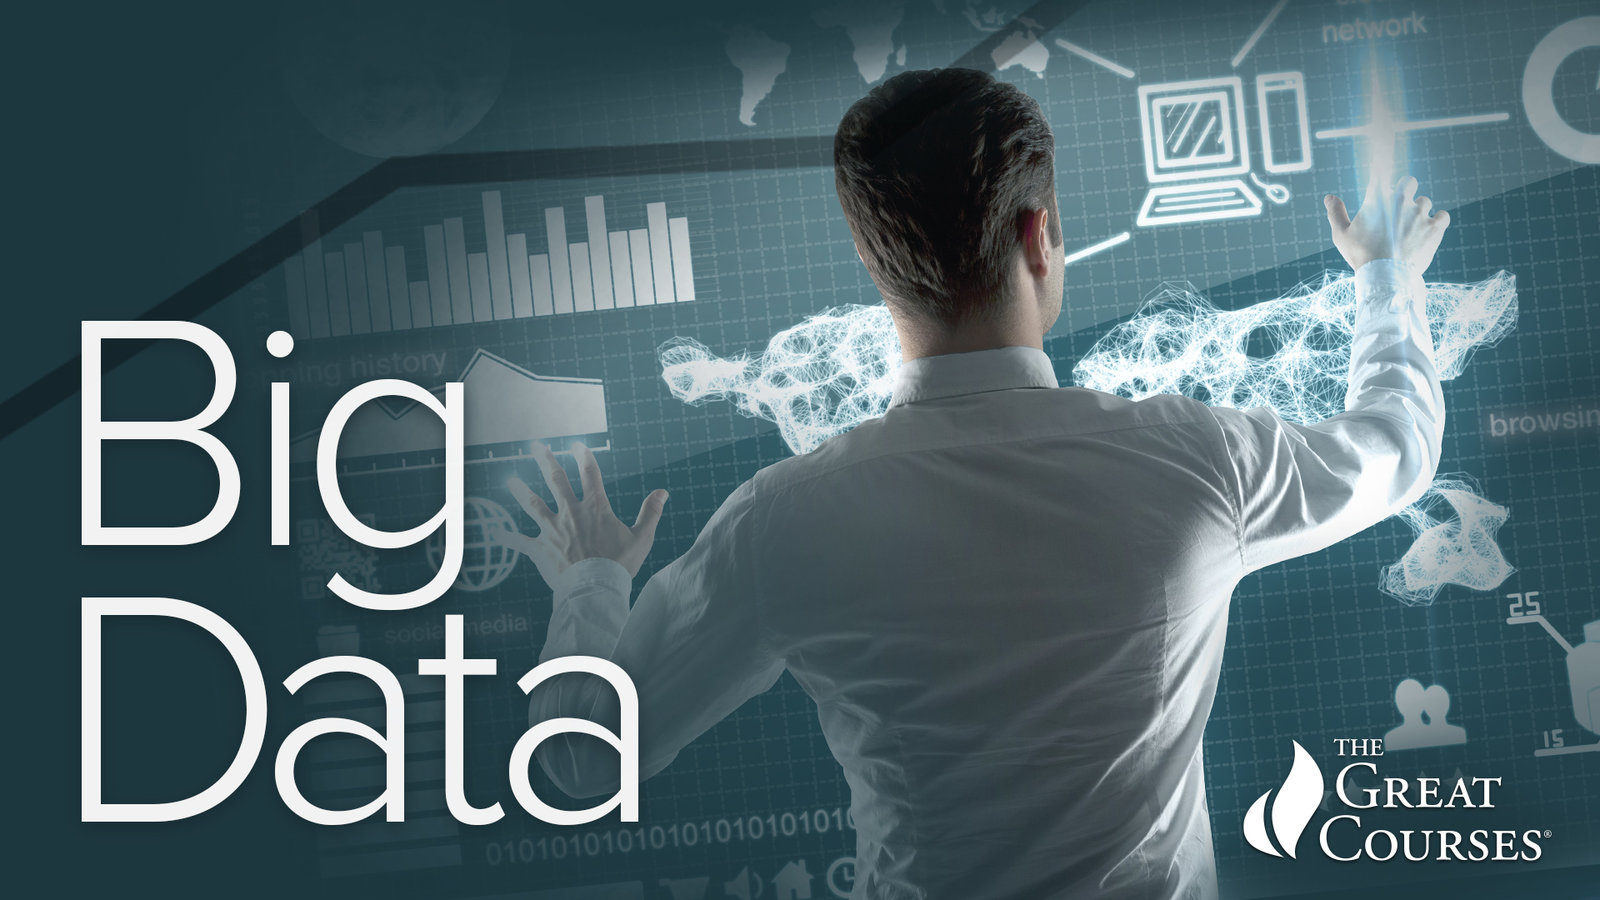 Big Data - How Data Analytics Is Transforming the World